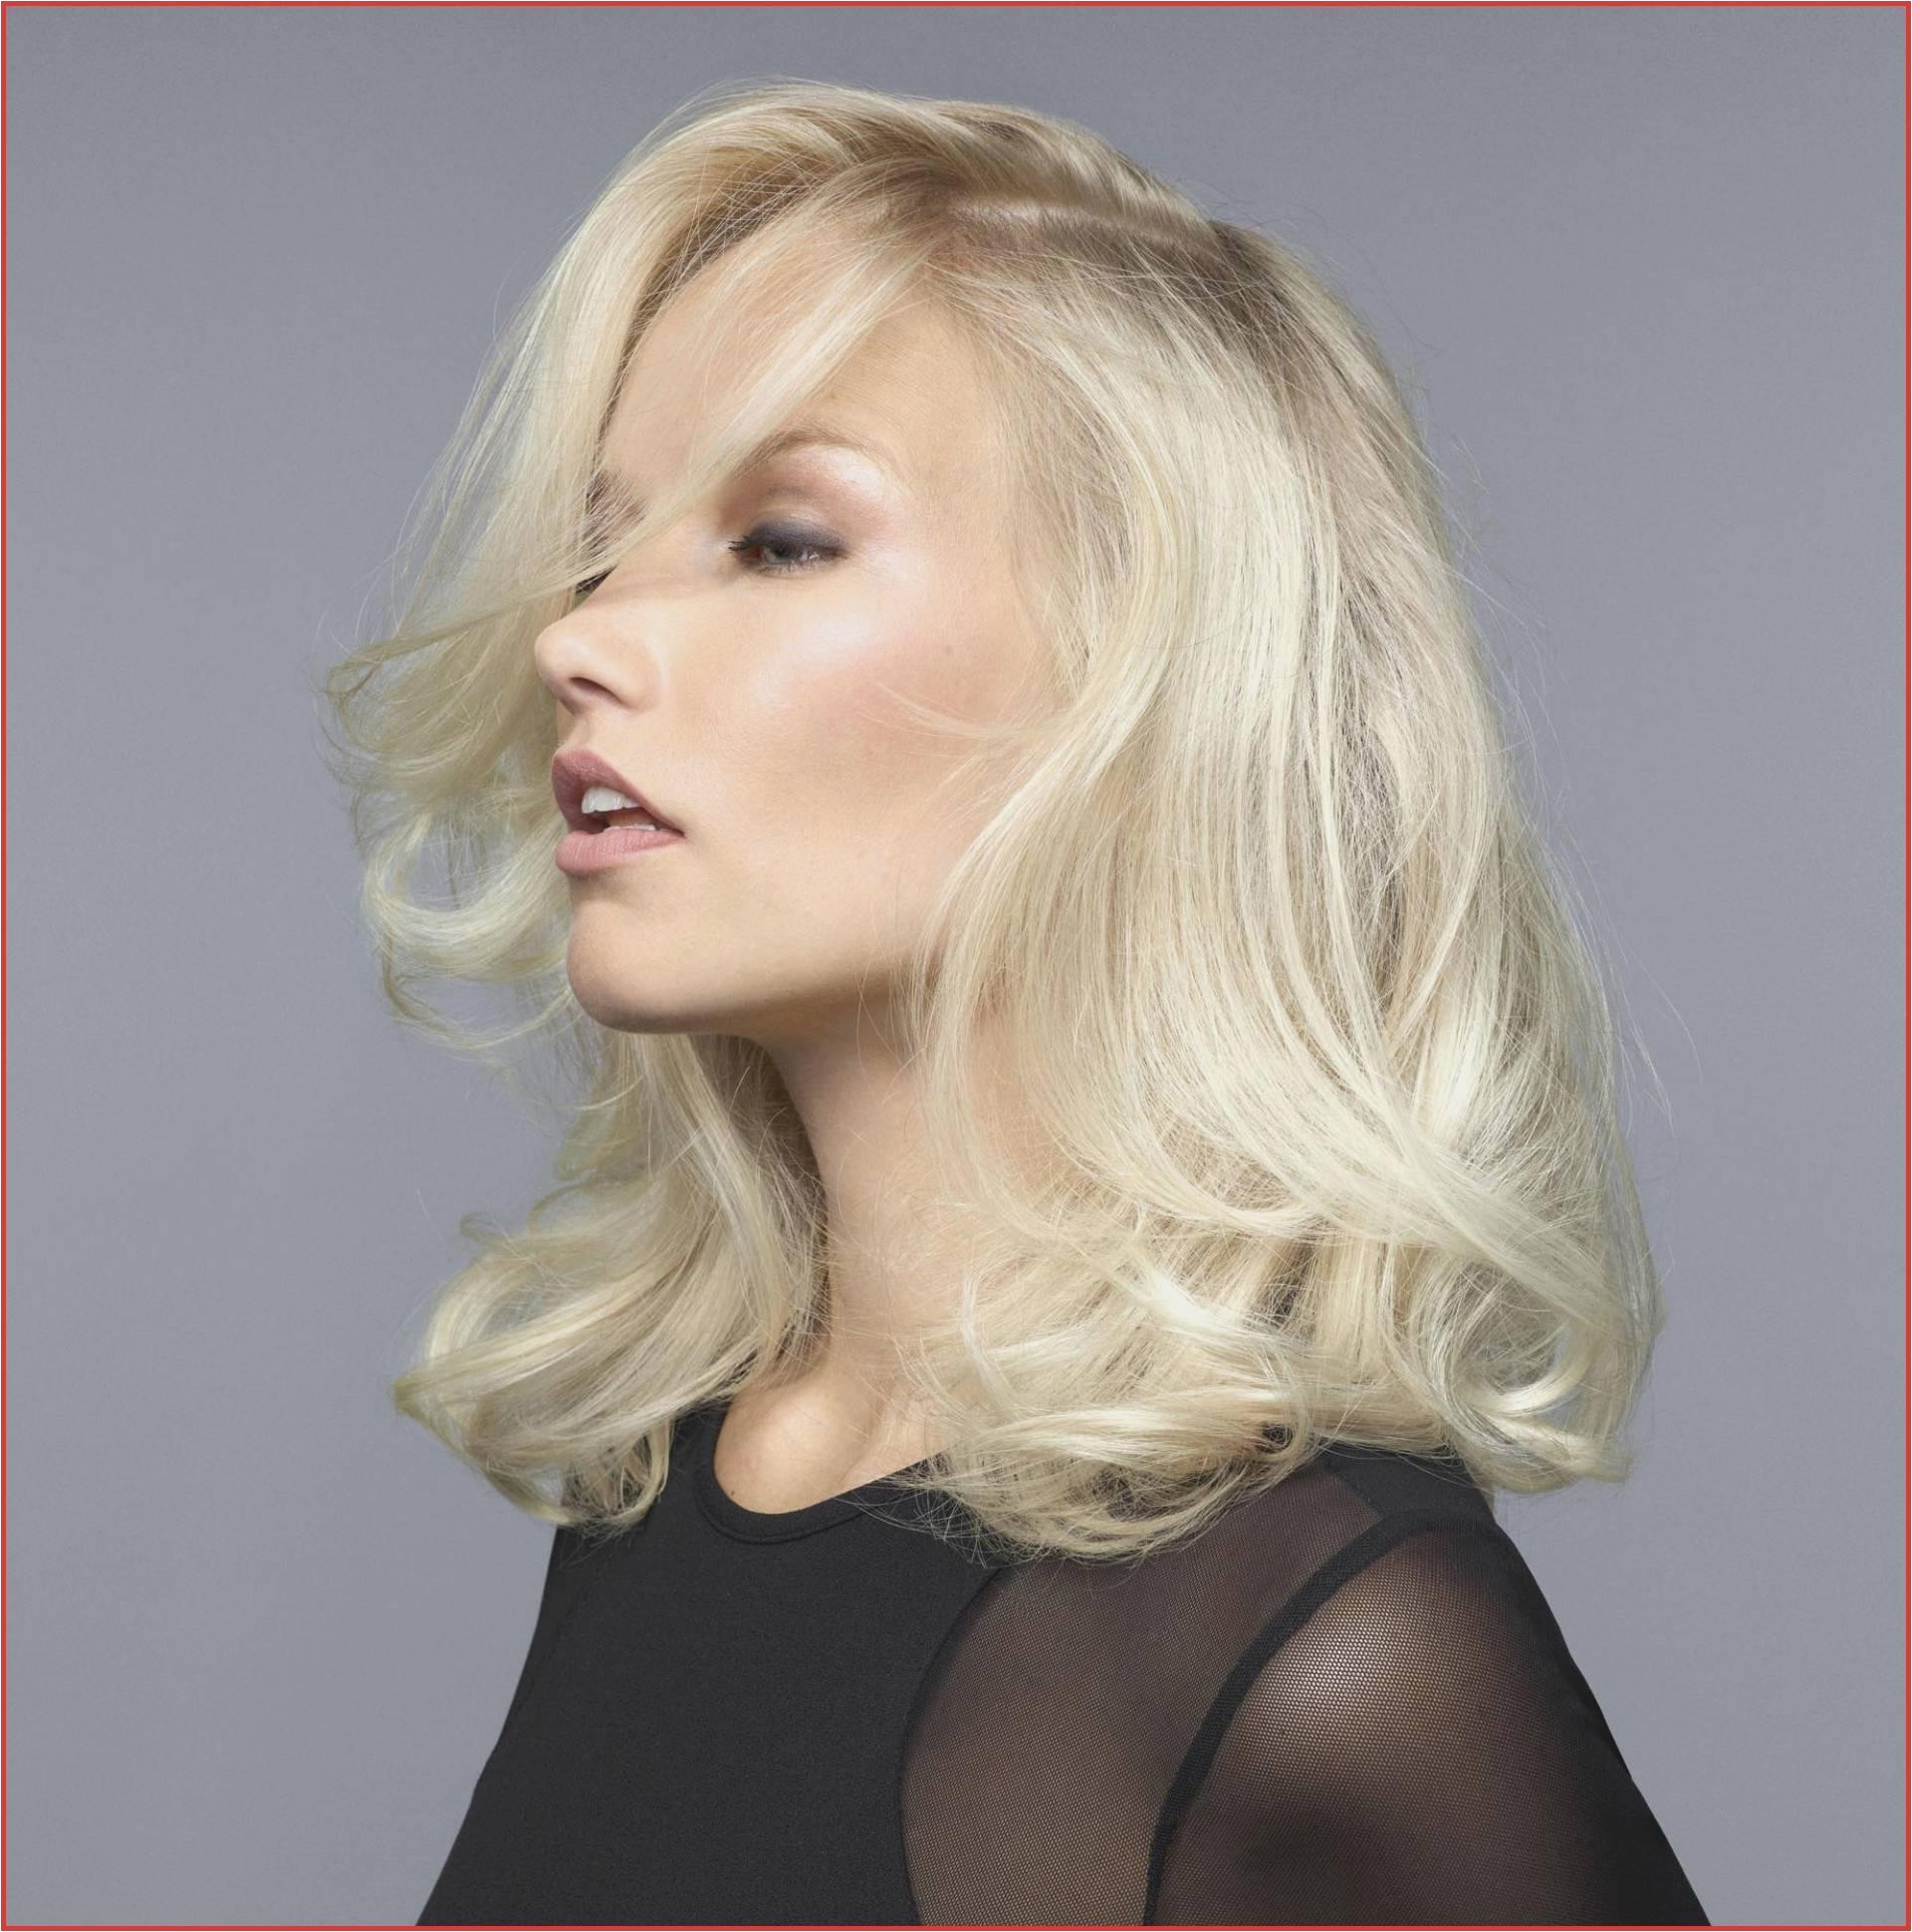 Haircut for Girls Girl Getting Haircut New Girl Haircut 0d Amazing Ideas New Hairstyle for